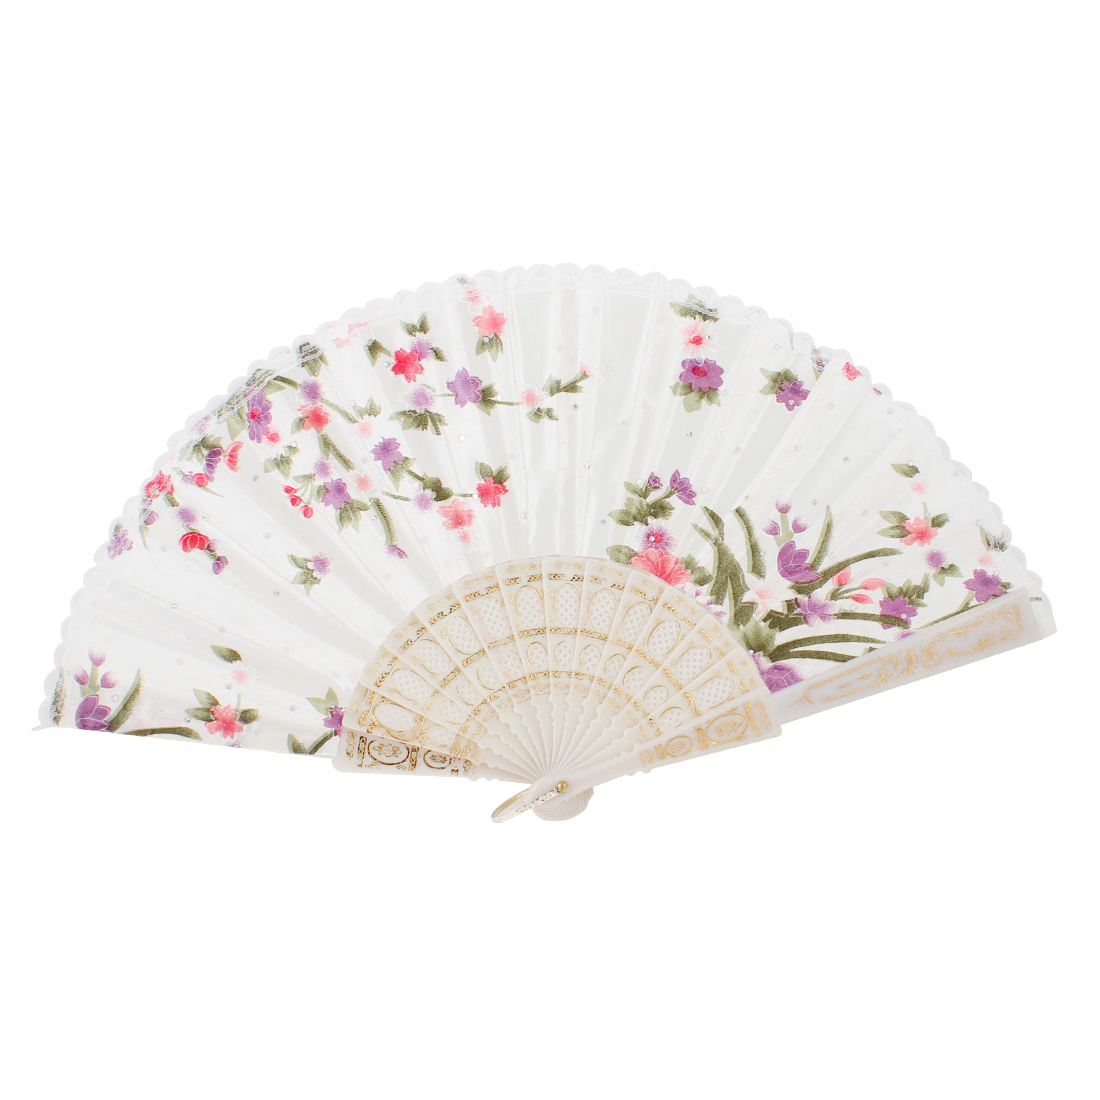 Colorful Flower Plant Pattern White Lace Trim Hand Fan for Dancing